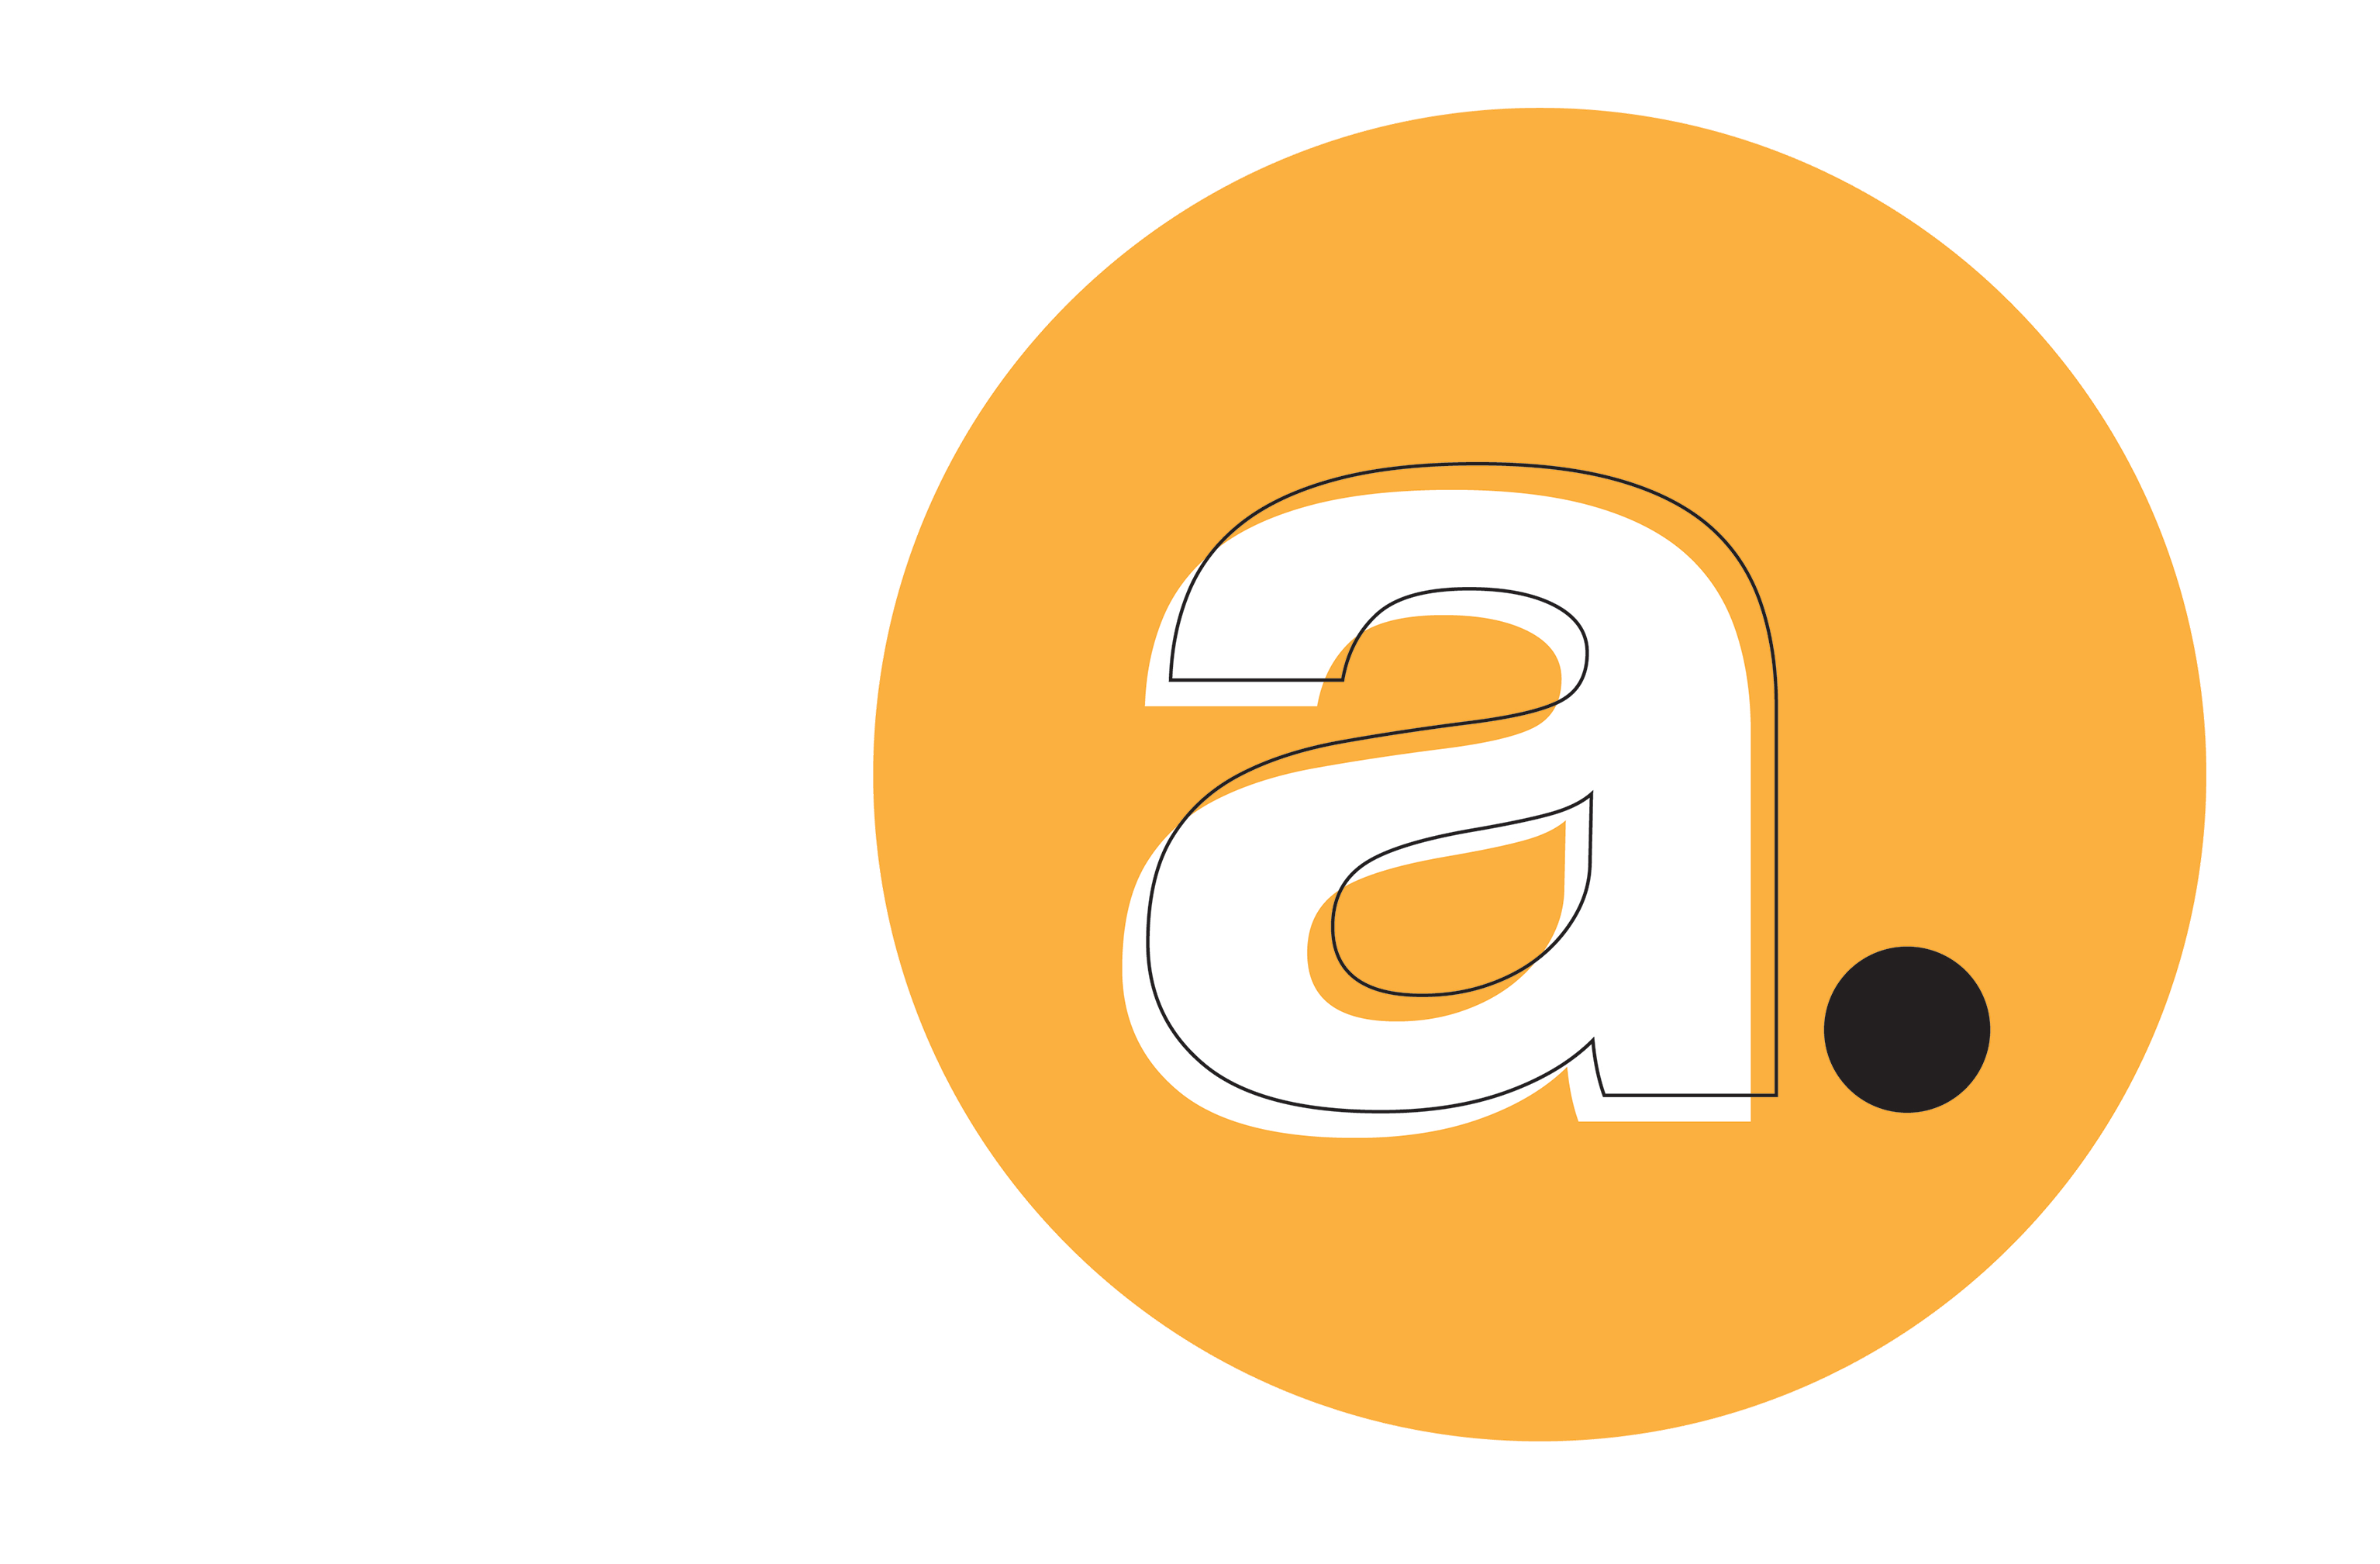 ariano y punto logo-transparent rectangle right